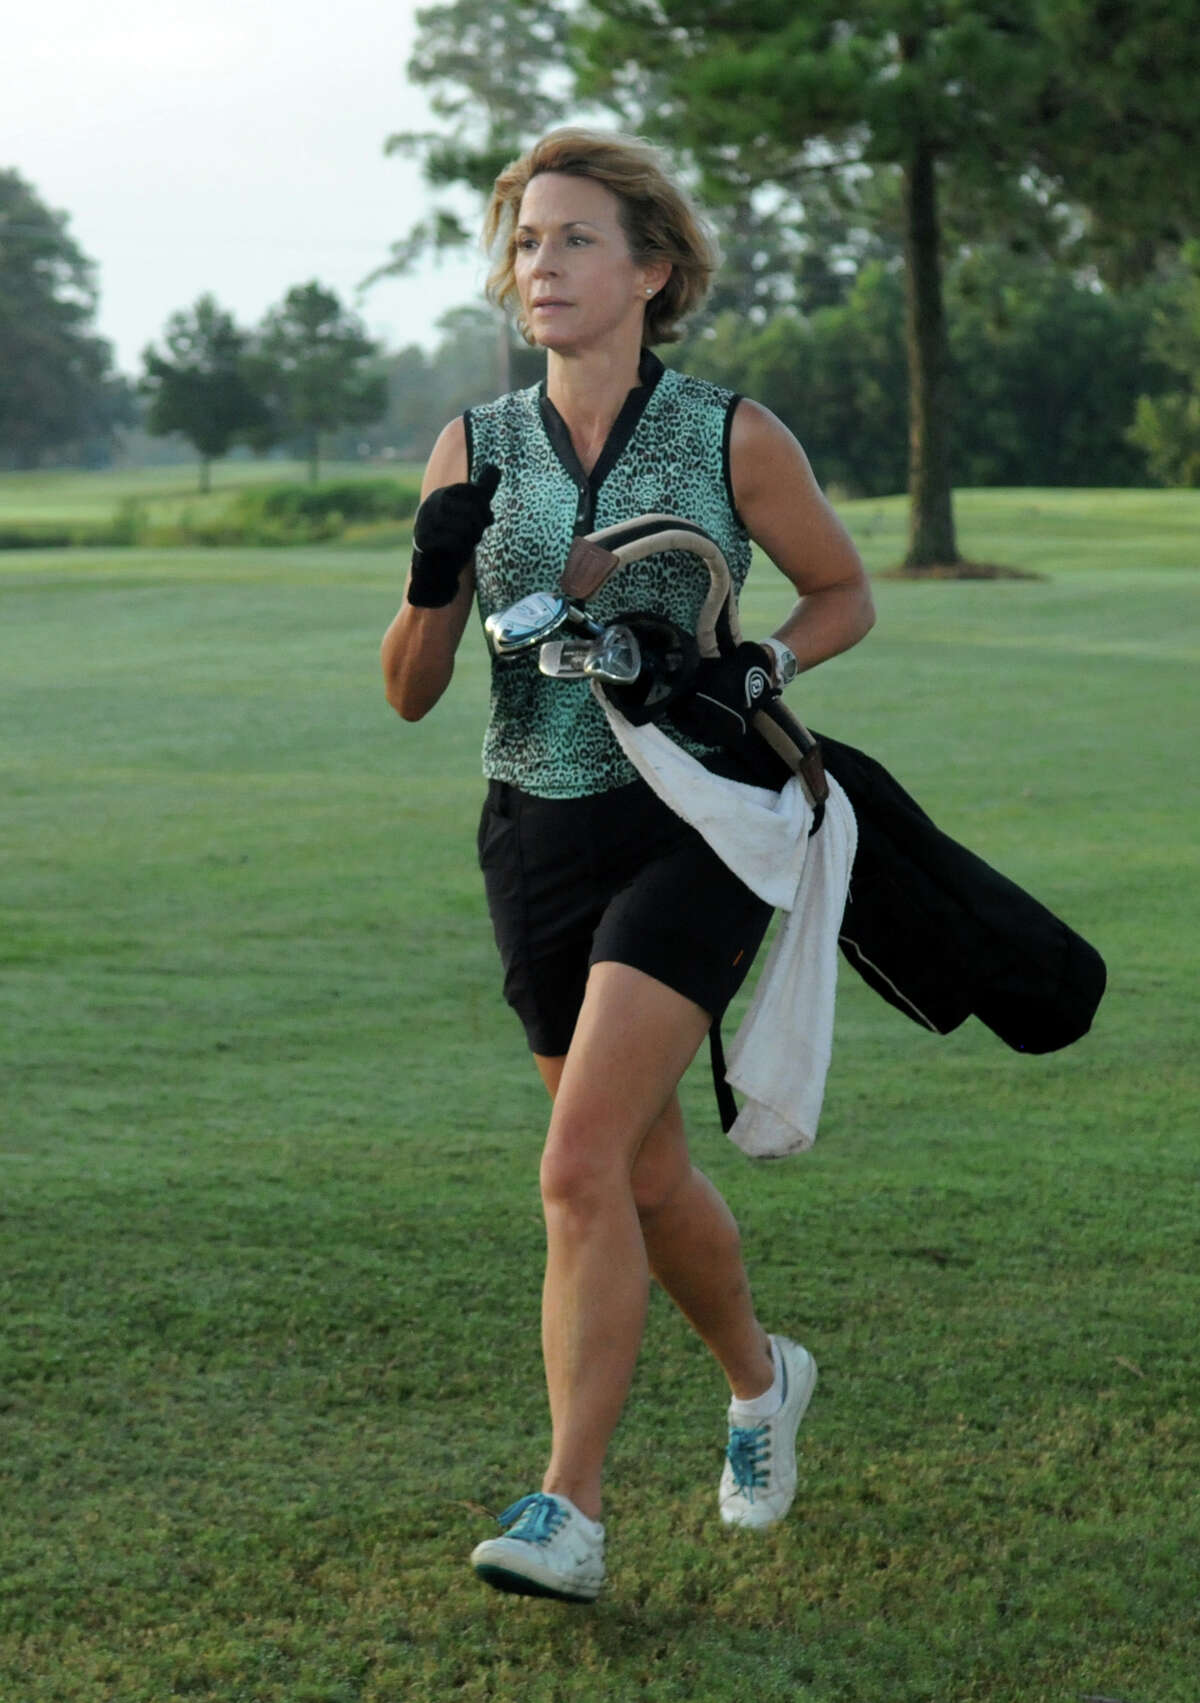 In Speedgolf, Herb Lipsman, general manager of Redstone Golf Club, uses the hands-on approach to carrying fewer clubs, while Redstone director of golf fitness Pam Owens, below, opts for a smaller golf bag.